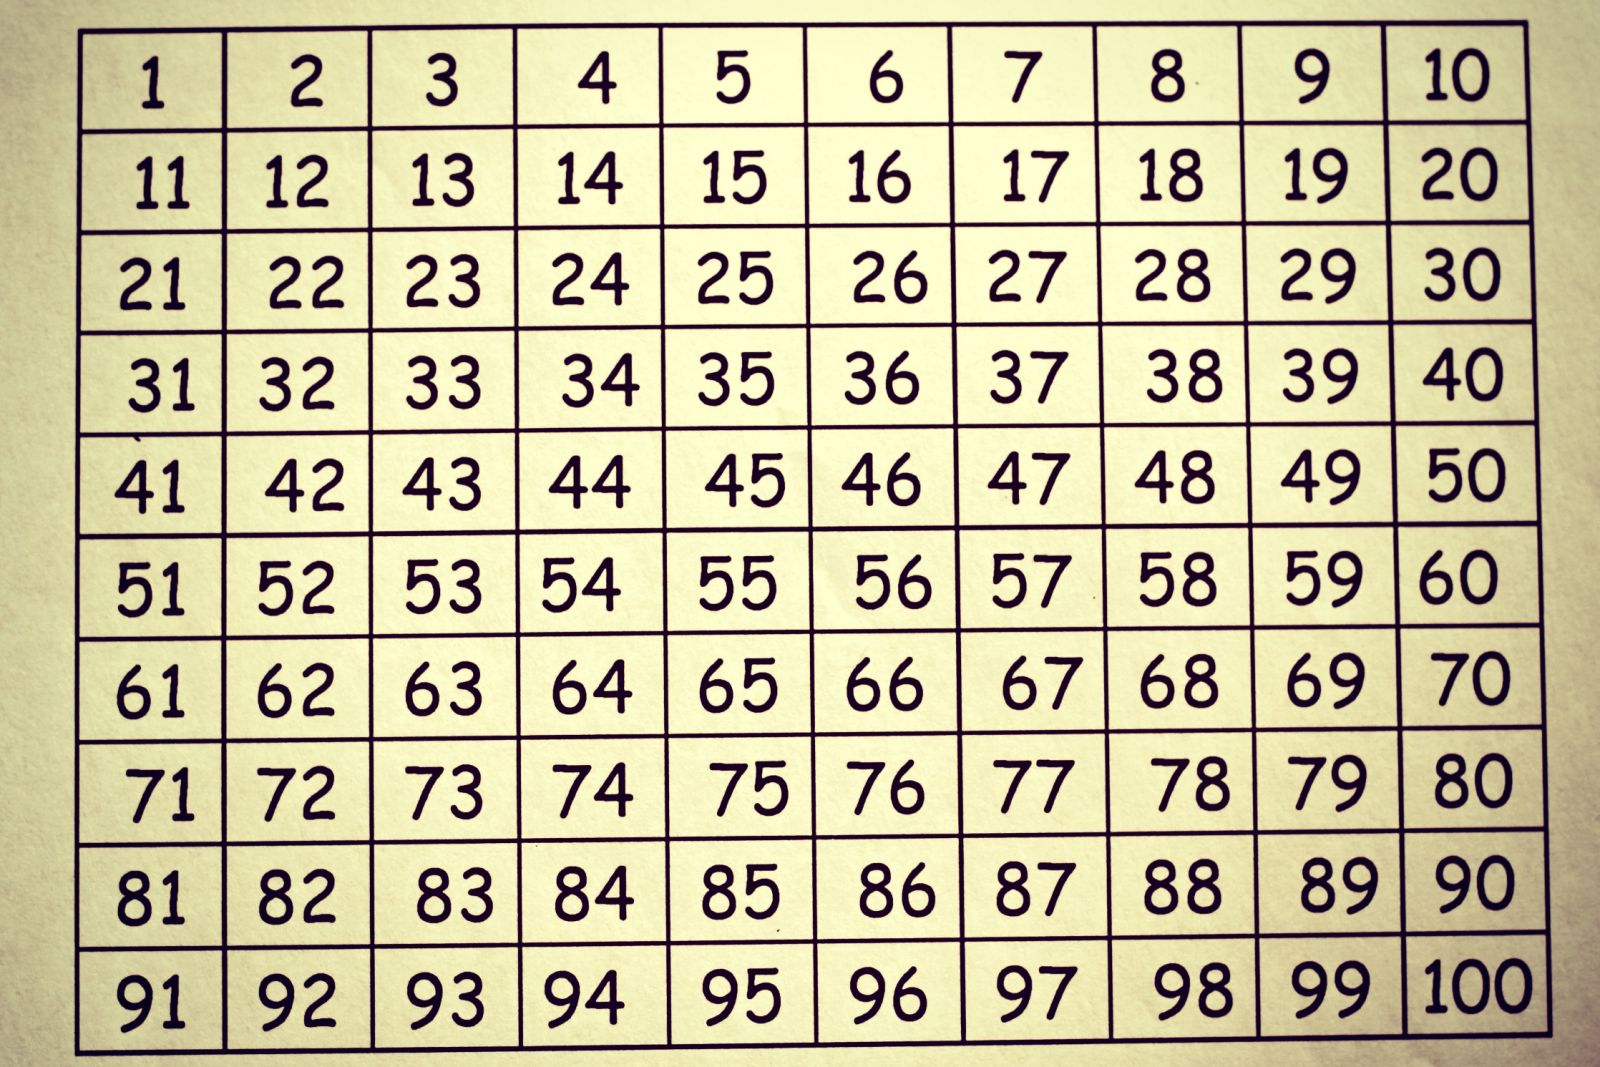 What Number Am I? 100's Board Activities | Multiplication